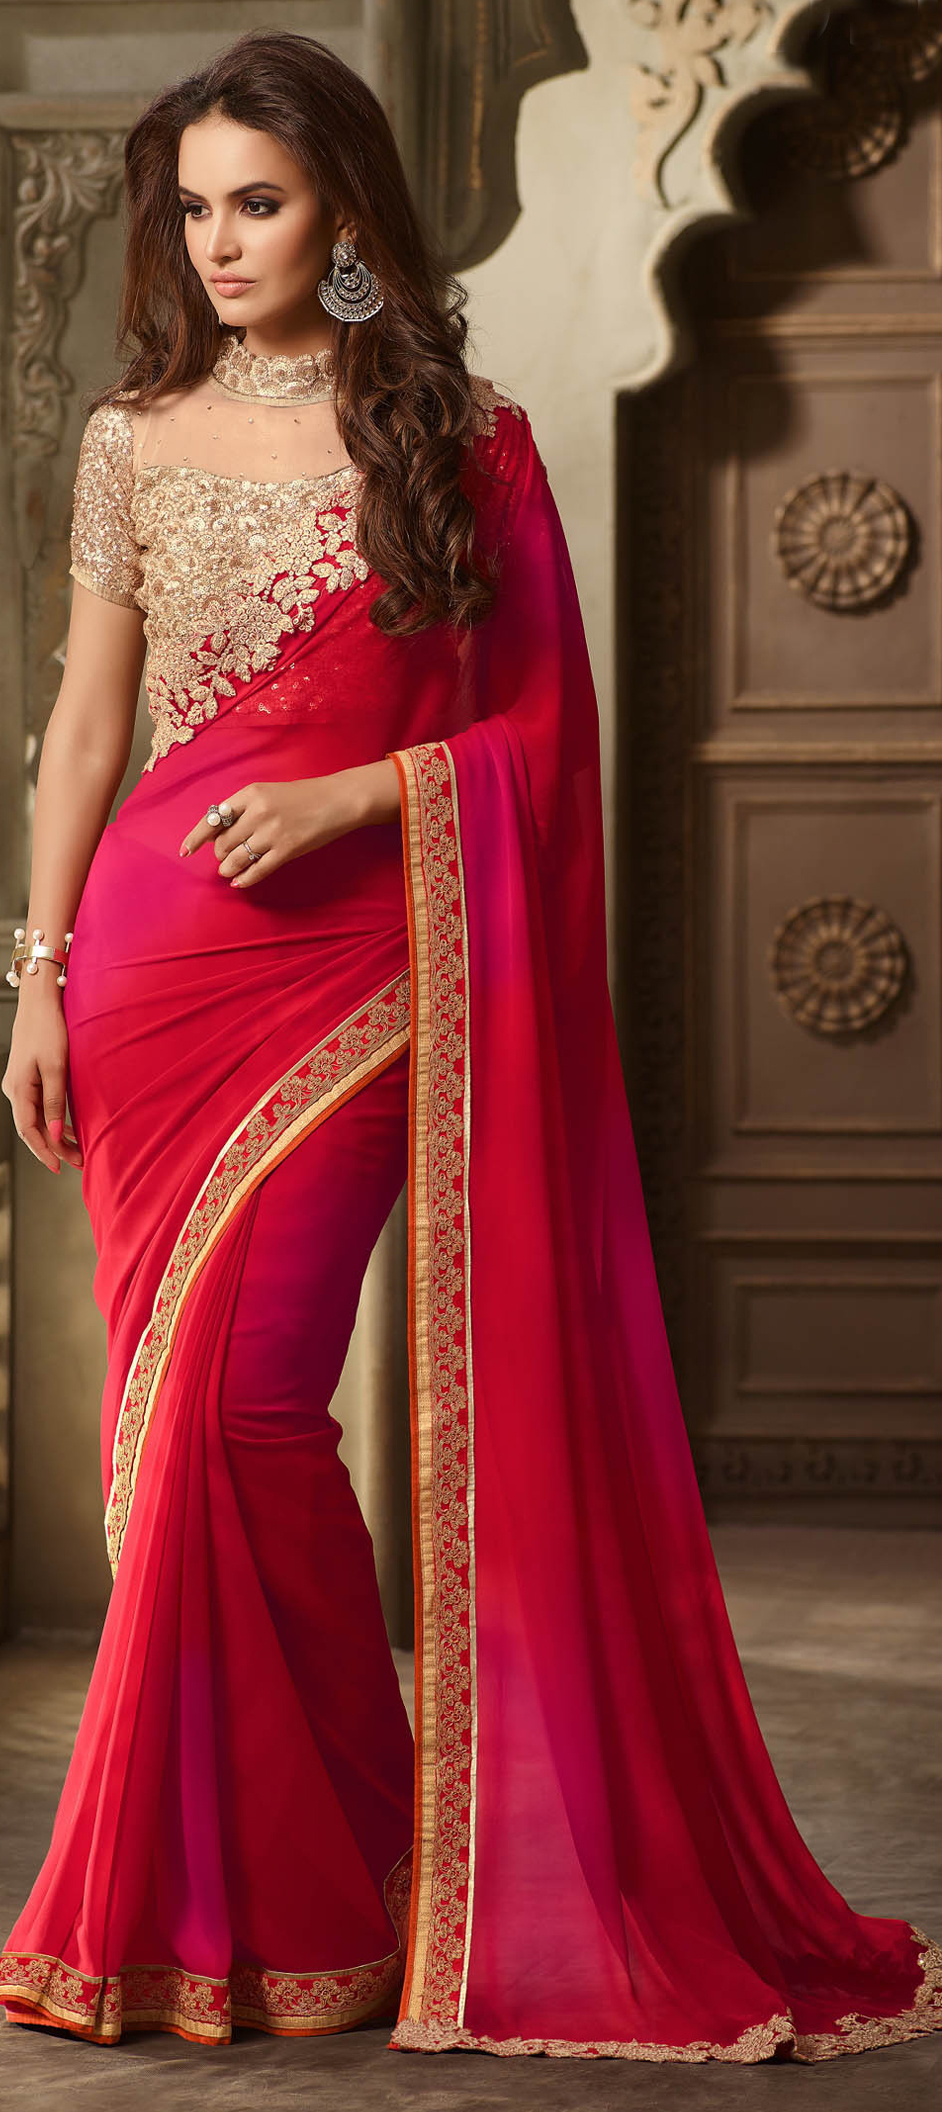 709849 Pink And Majenta Color Family Embroidered Sarees